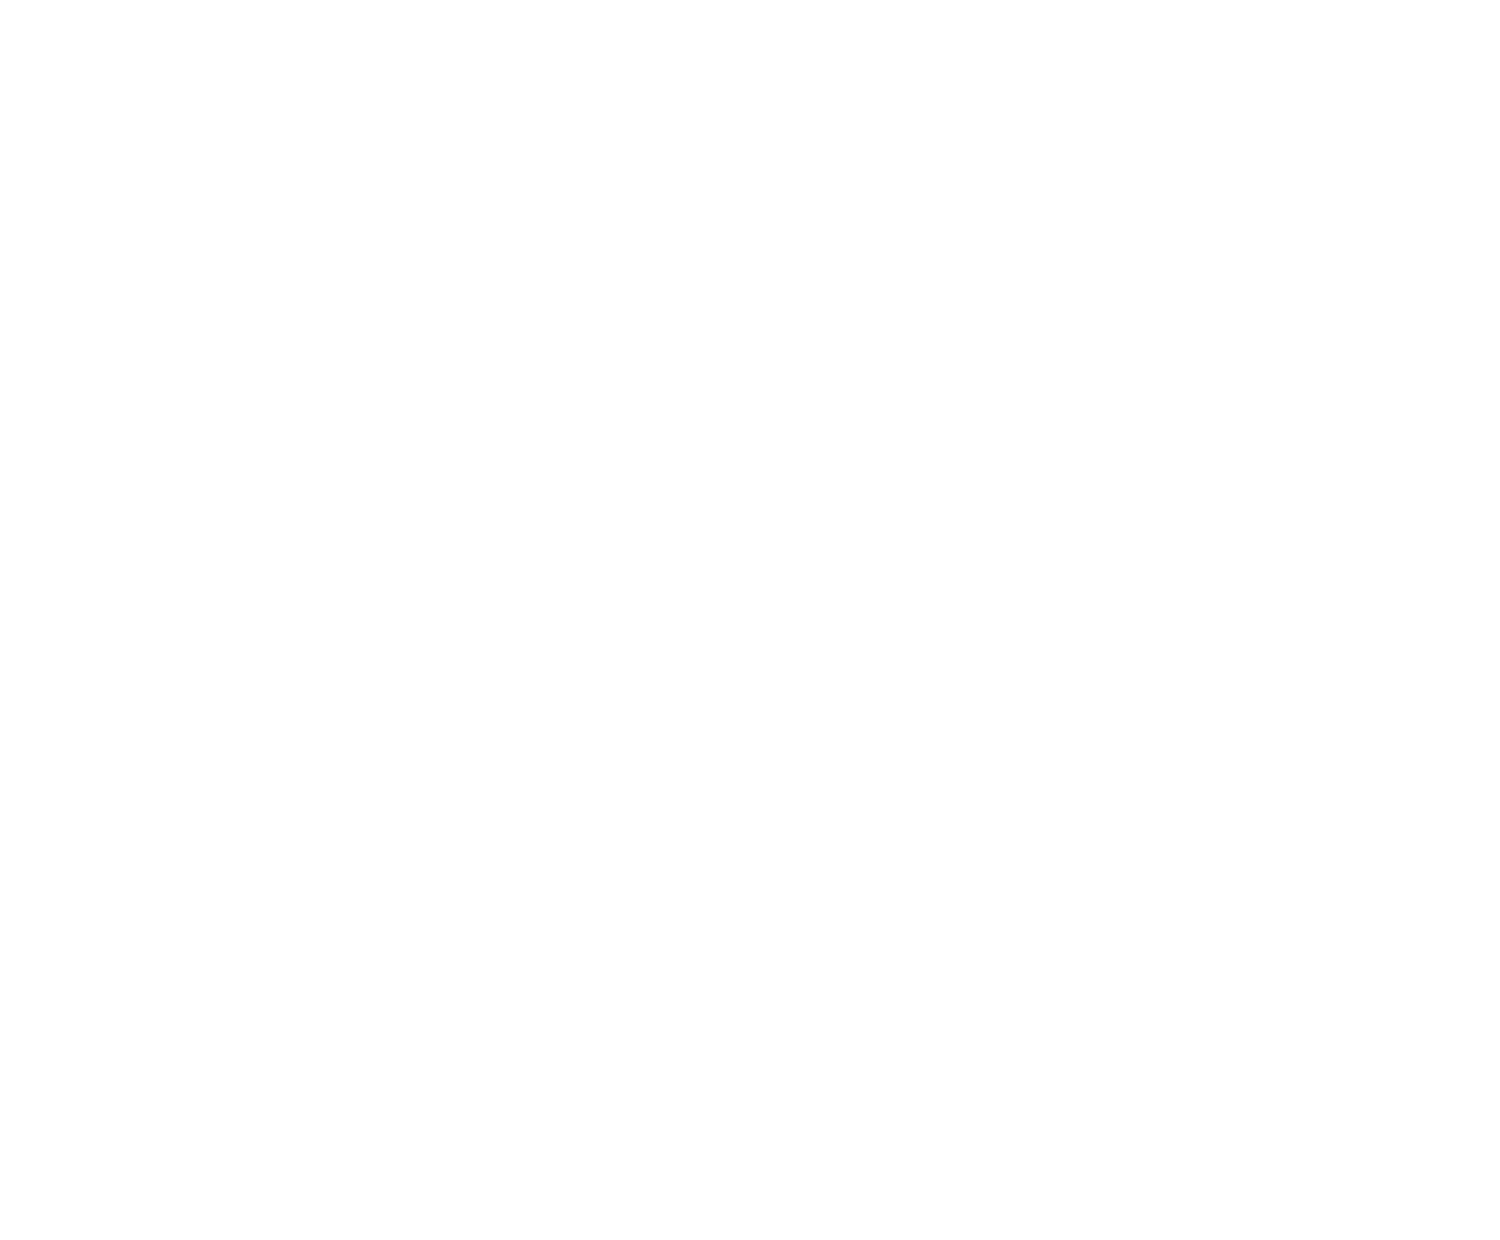 DRINK TANKS